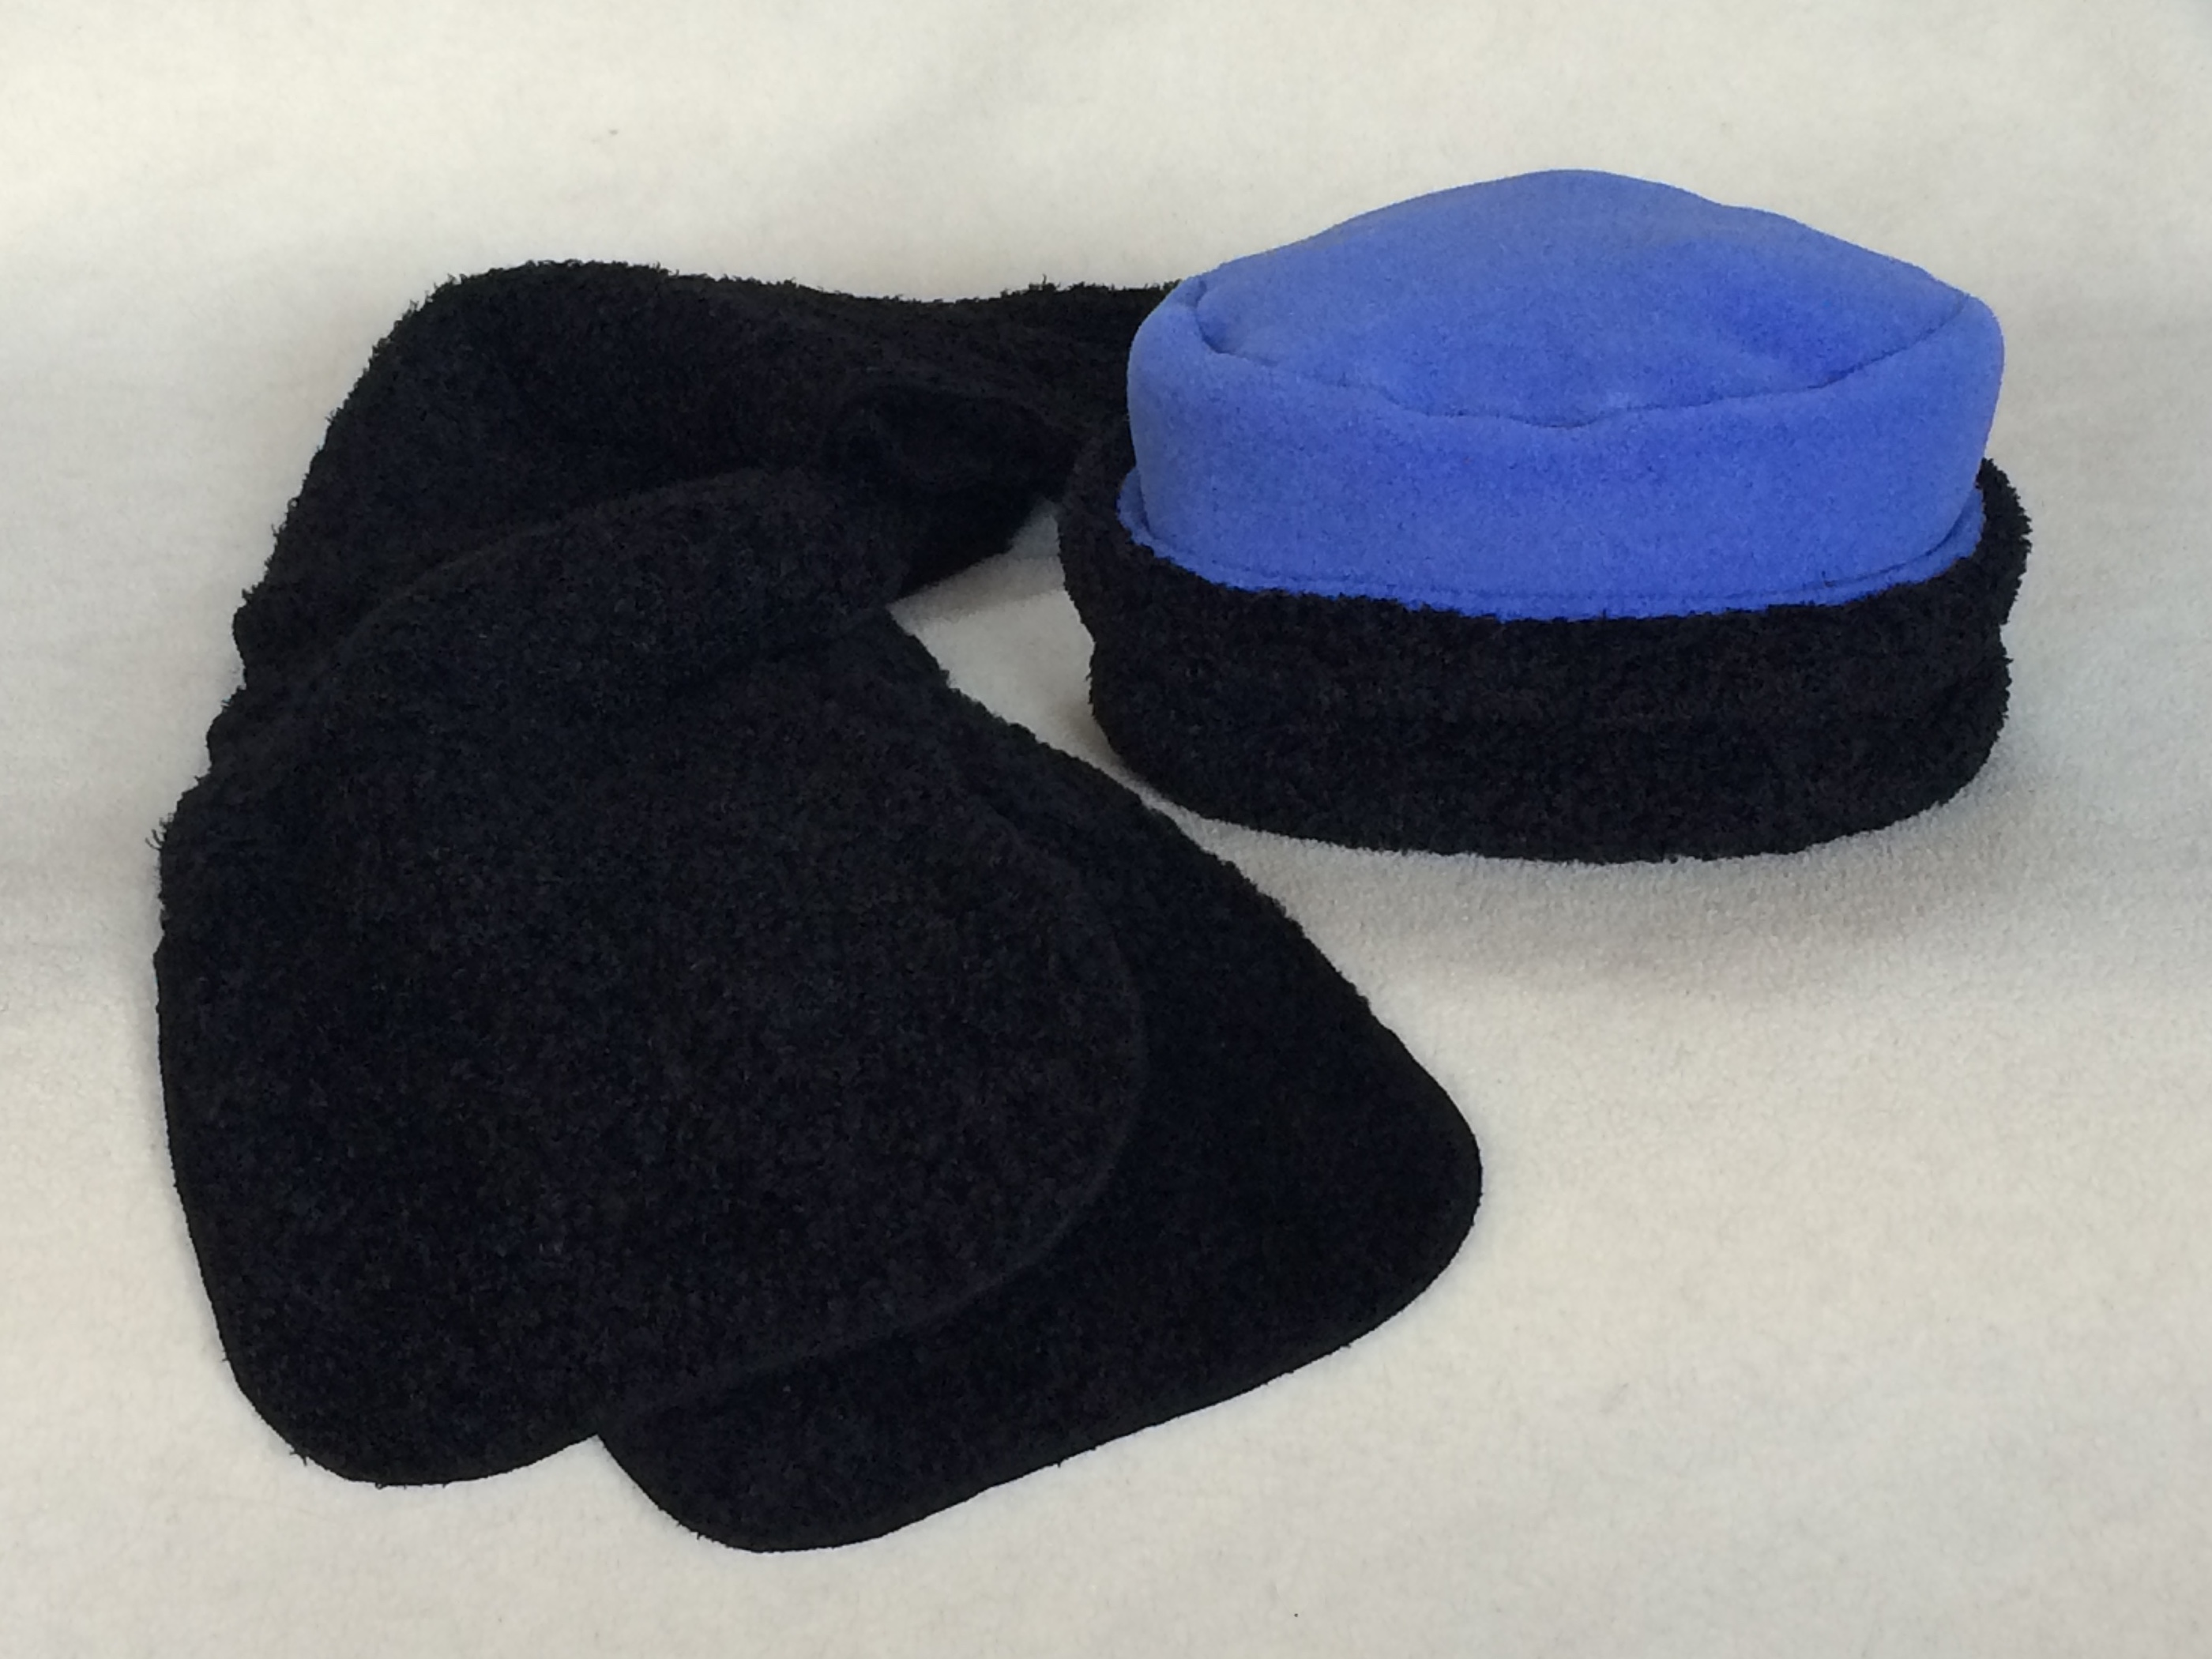 Keep warm with our most popular hat in Periwinkle solid fleece combined with fabulous curly fabric. Double layers of fleece with the super soft curly close to your ears. Paired with a Black Curly scarf and you'll be warm and fashionable. Fabric from Malden Mills, one size fits most.